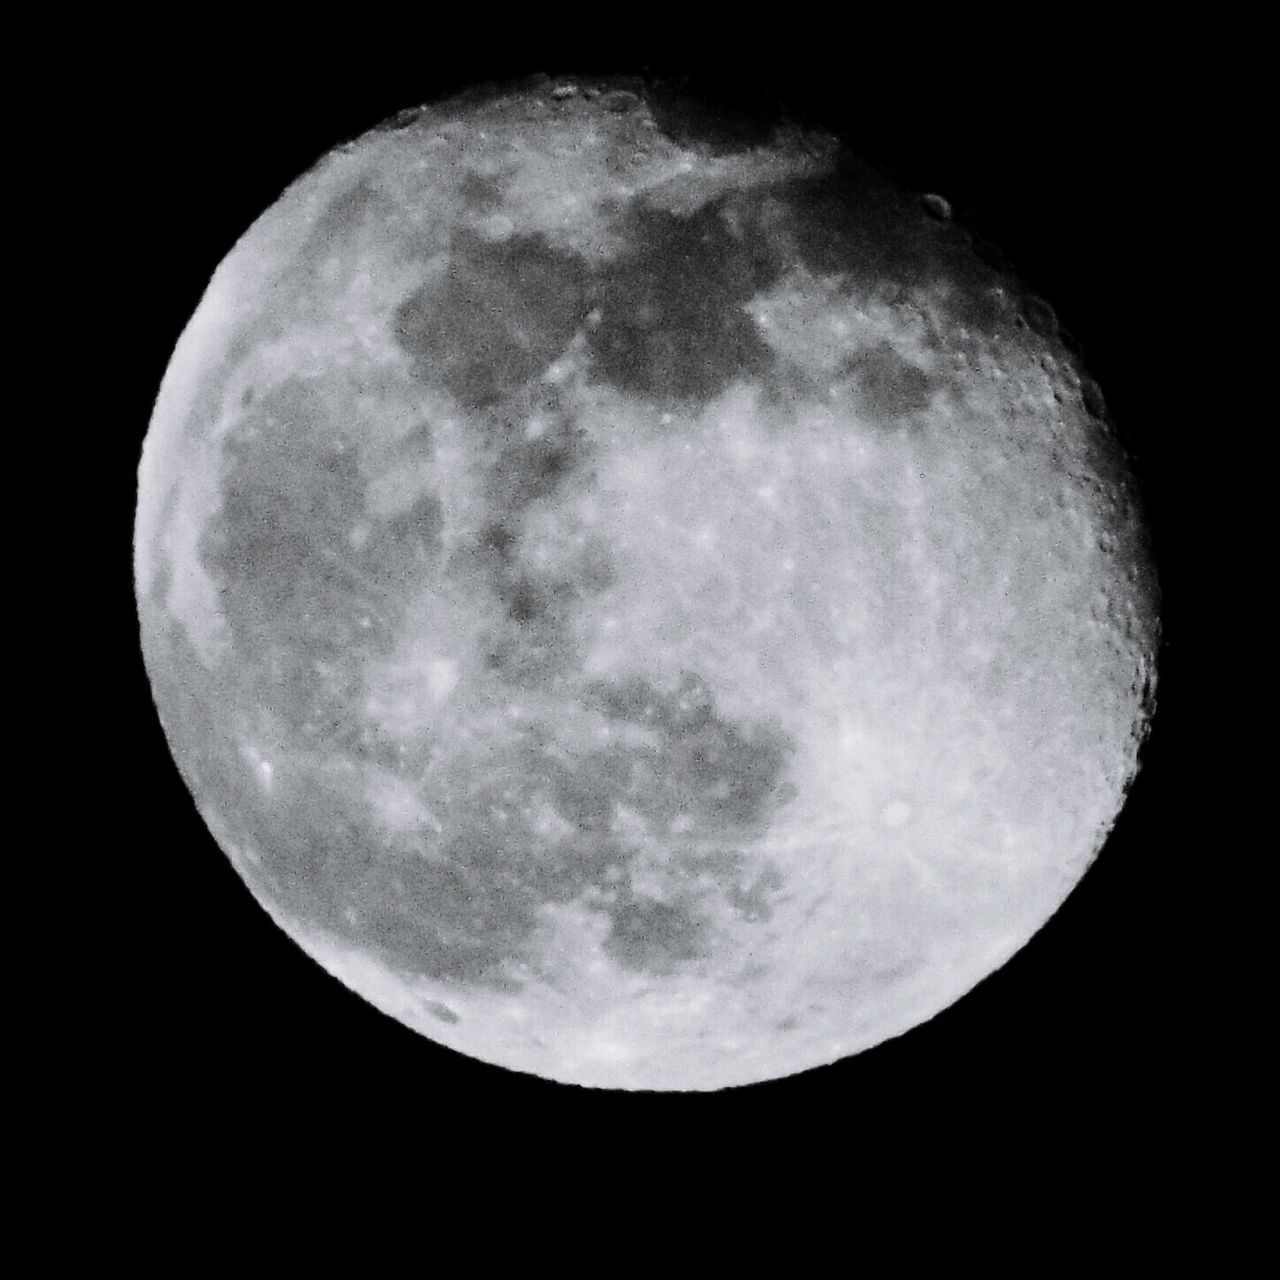 moon, night, moon surface, planetary moon, astronomy, full moon, beauty in nature, majestic, nature, scenics, tranquility, tranquil scene, discovery, space exploration, half moon, low angle view, no people, sky, space, moonlight, sky only, outdoors, clear sky, close-up, satellite view